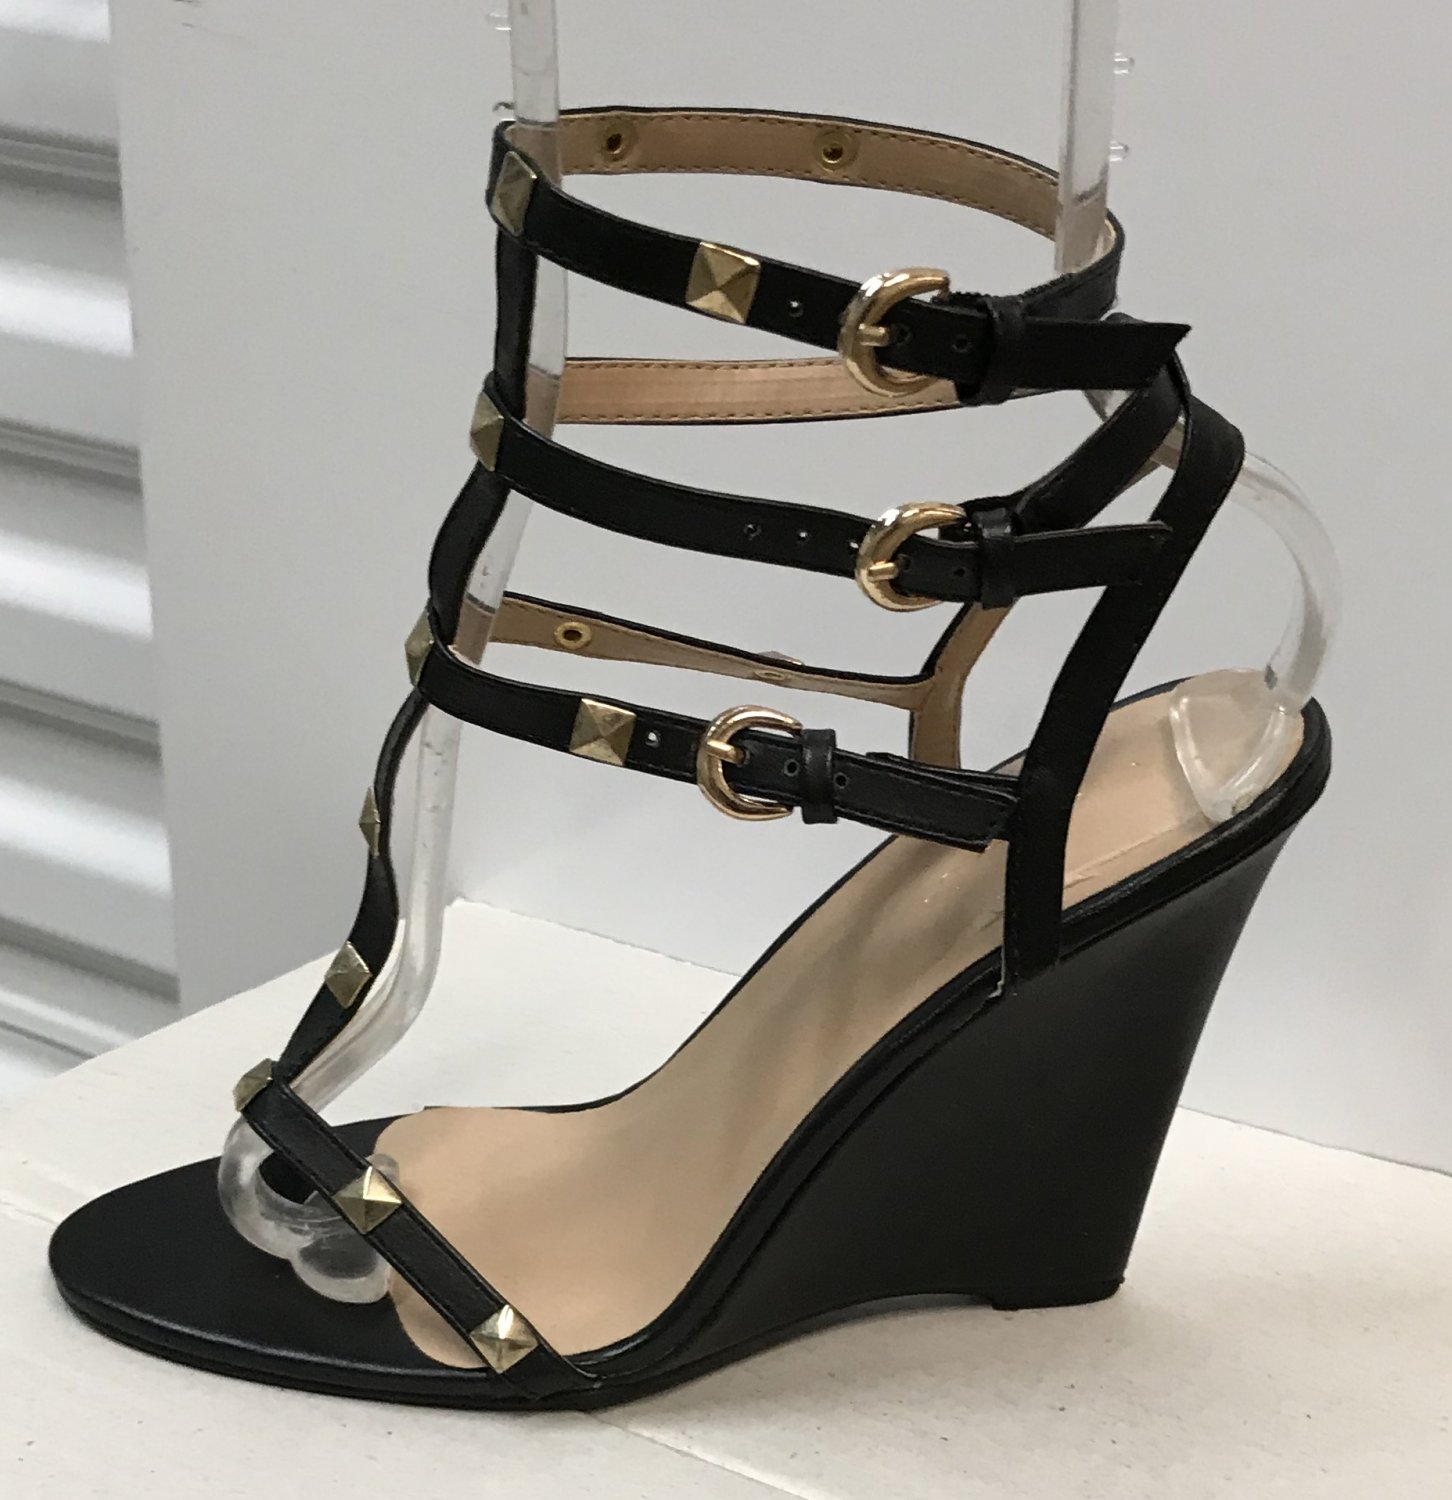 9b90577933a Ladies WEDGE SANDALS Caged Heels SIZE 9 BLACK Leather Shoes with Gold Studs